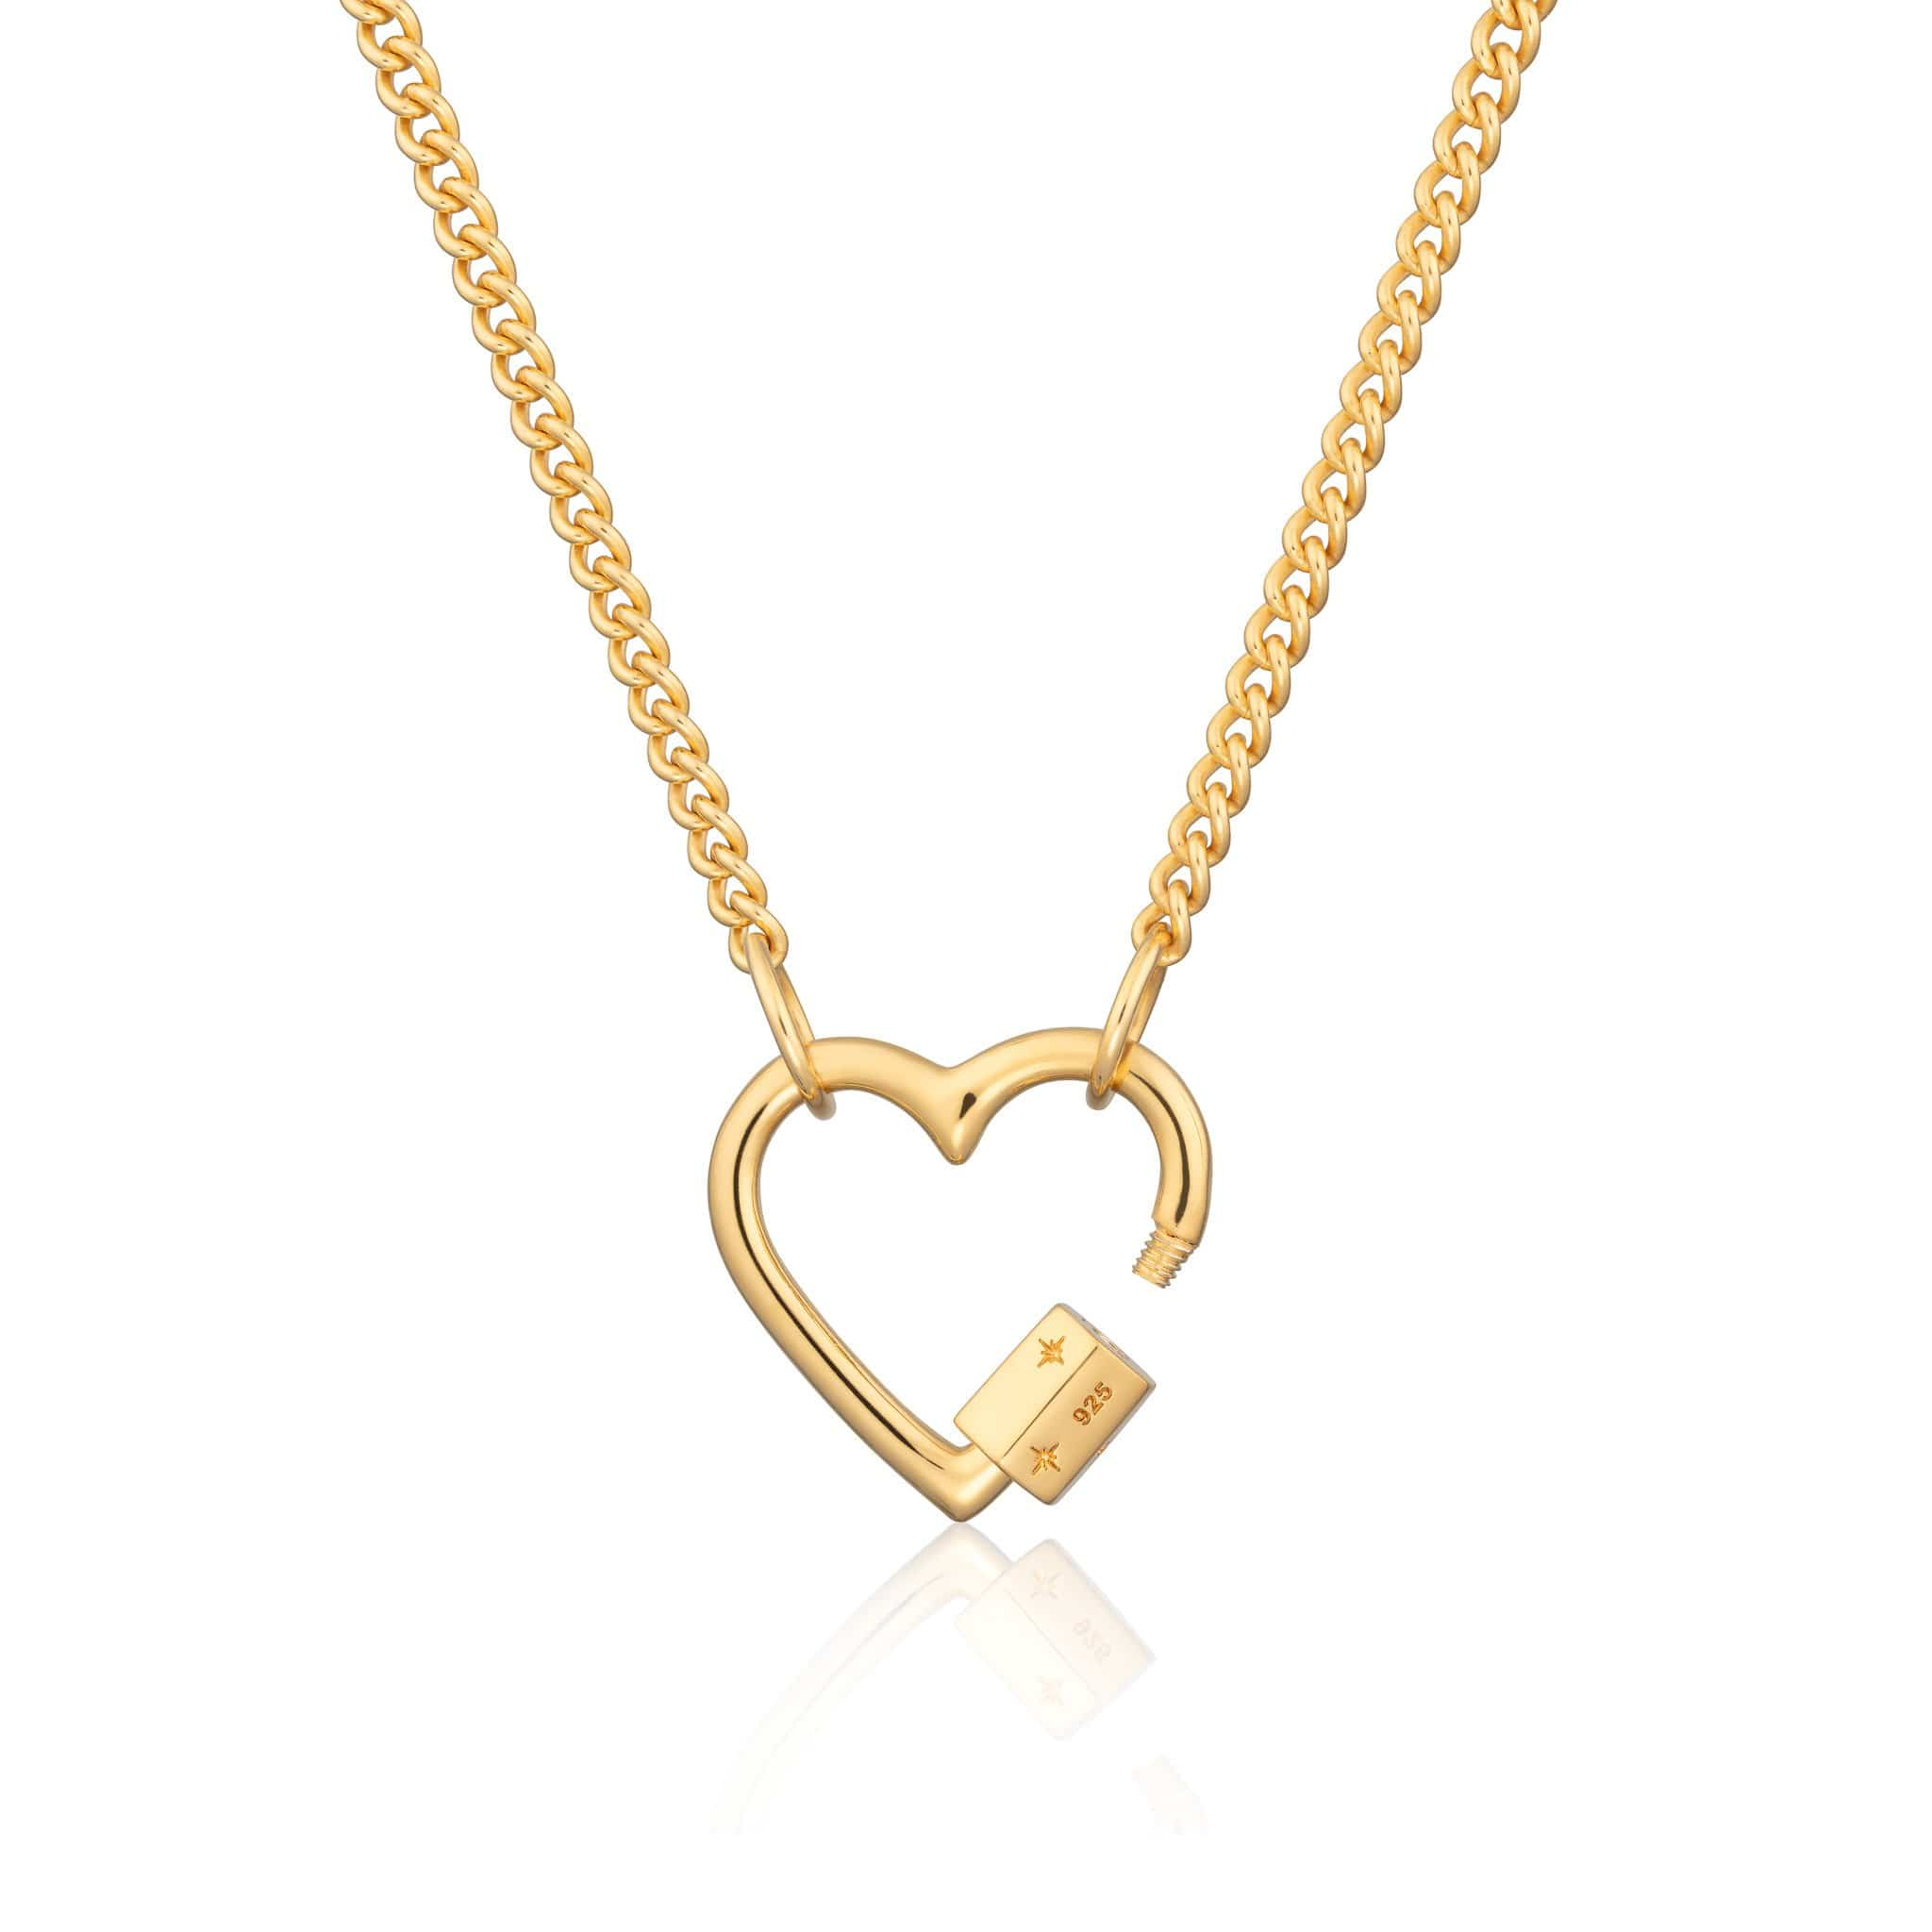 Gold Plated Heart Carabiner Curb Chain Necklace by Lily Charmed